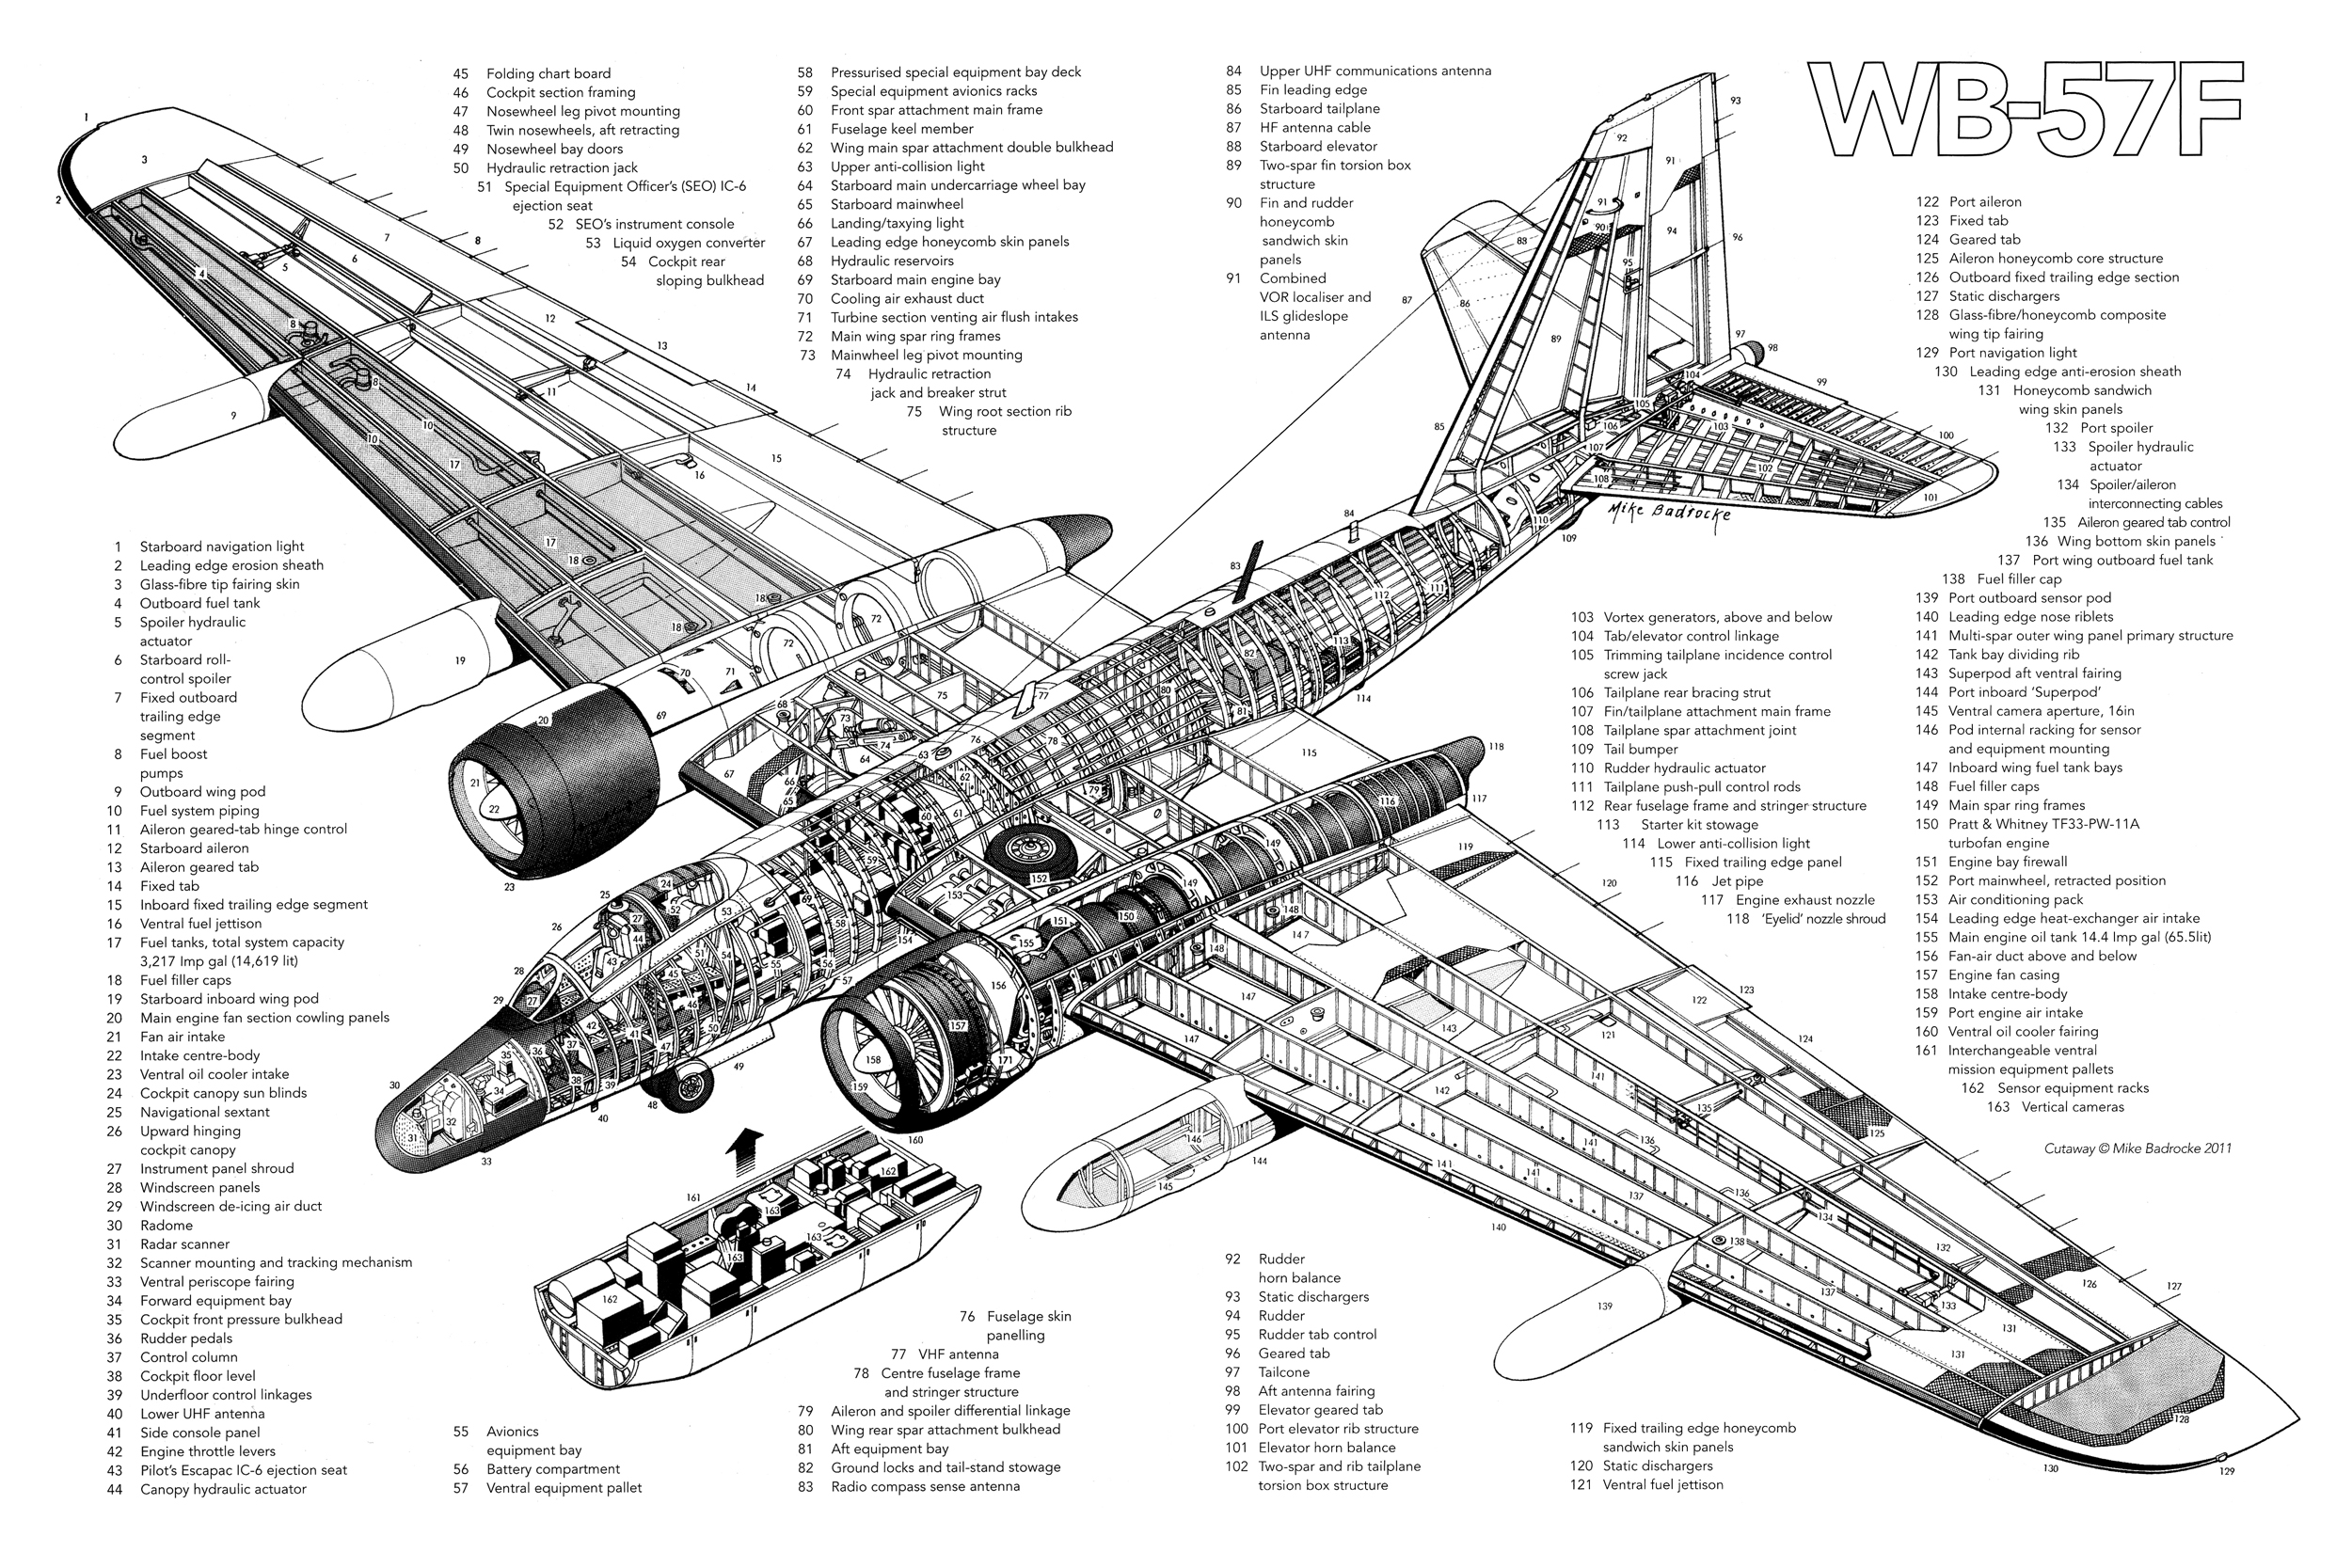 glider aircraft schematics with 781268 on Projek 1 It further How To Build Cool Paper Planes additionally Page 98 besides Balsa Wood Airplane Template in addition Yamaha Yzr M1.